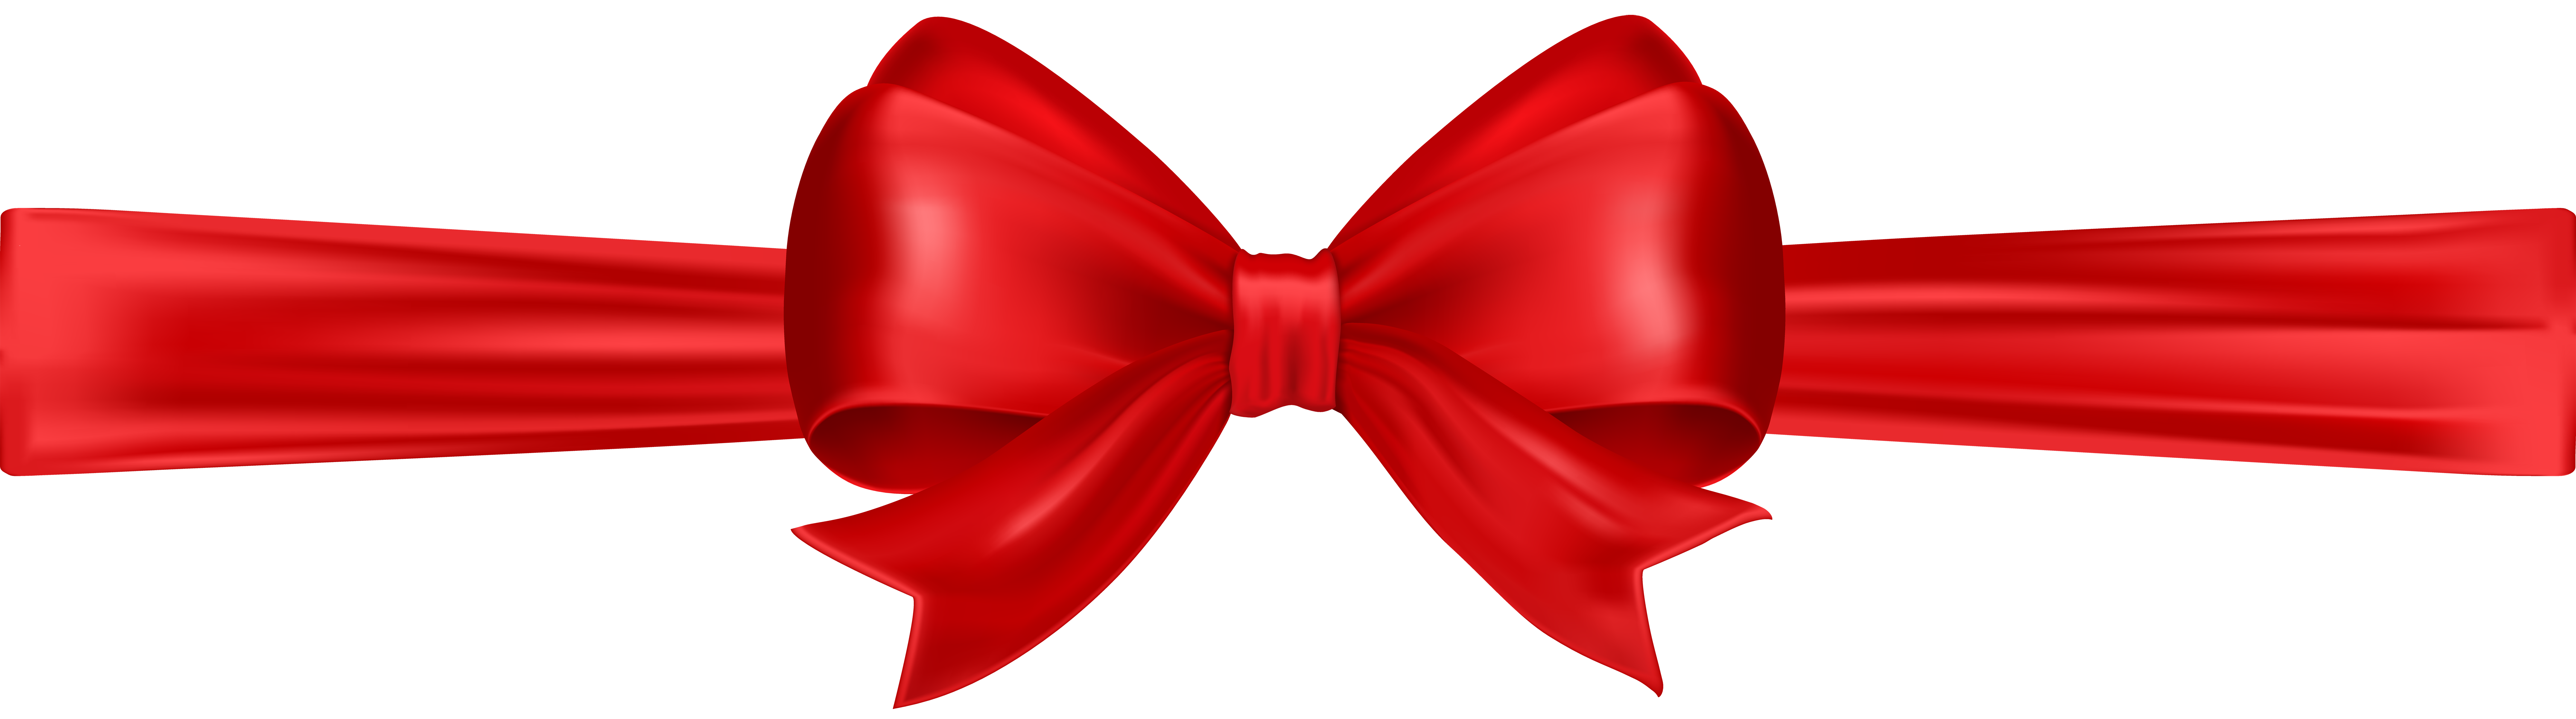 Red Bow Clipart.